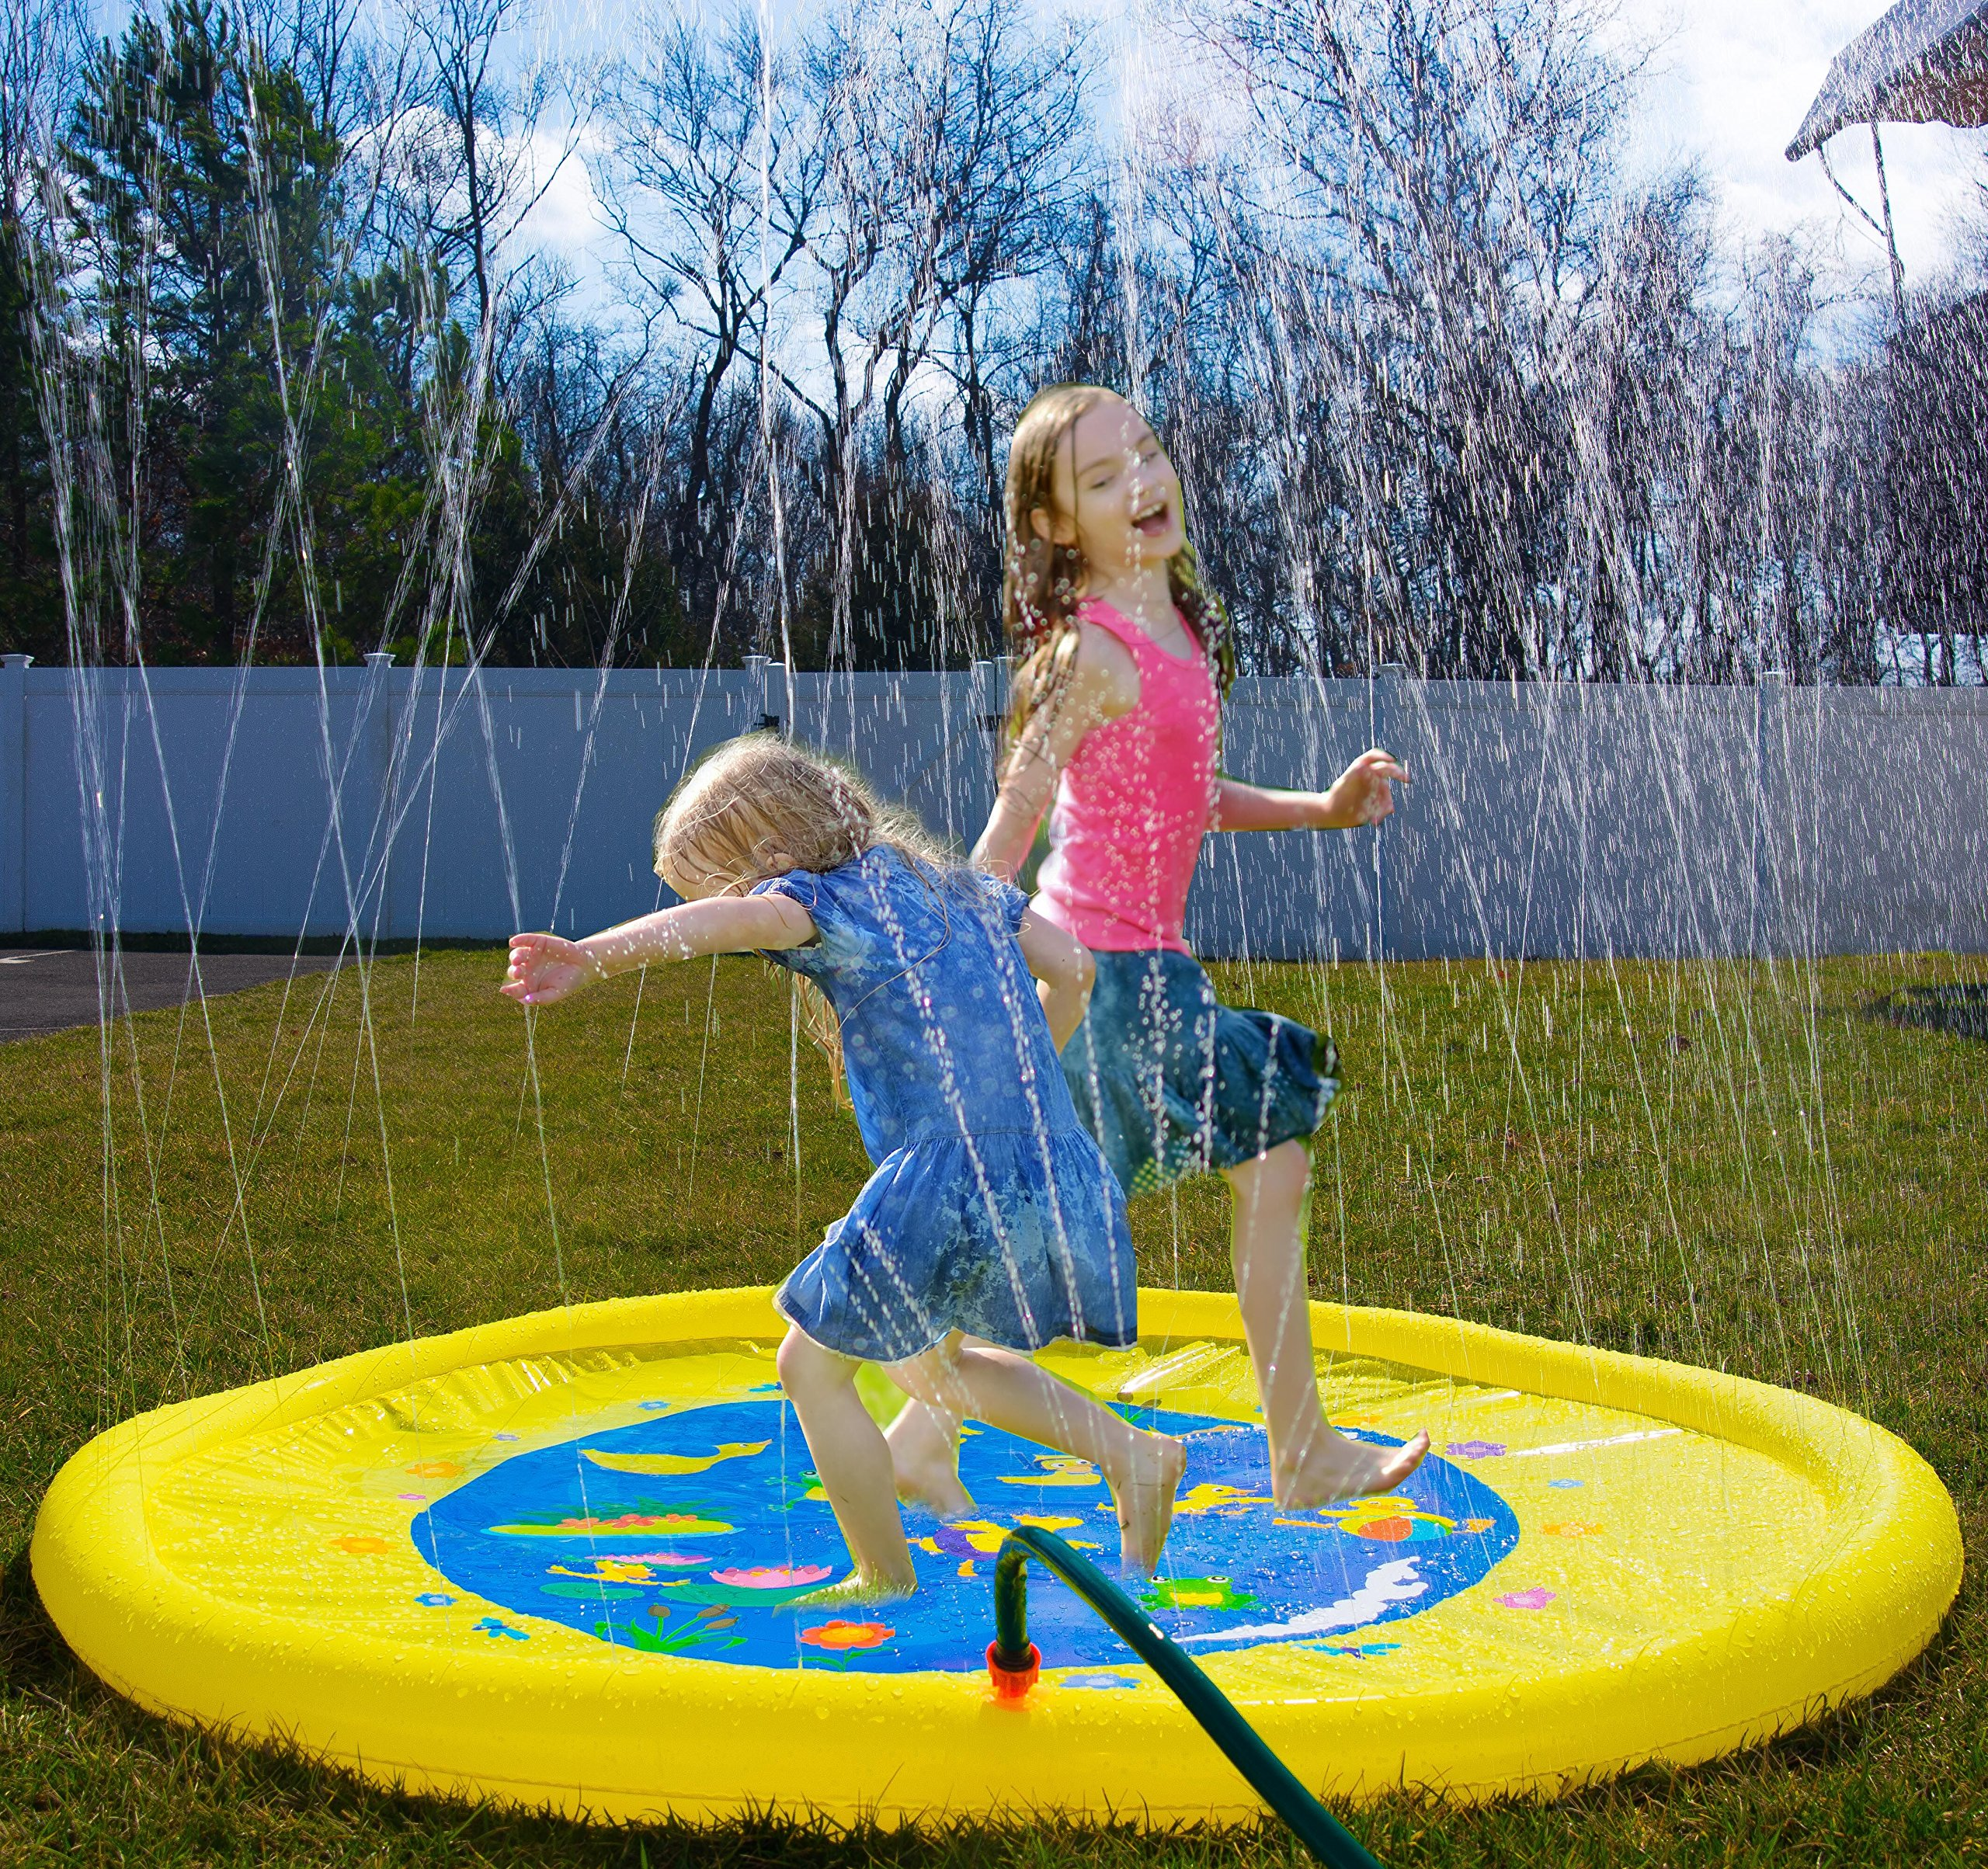 Splashin'kids 68'' Sprinkle and Splash Play Mat toy is for children infants toddlers,boys, girls and kids - perfect inflatable outdoor sprinkler pad